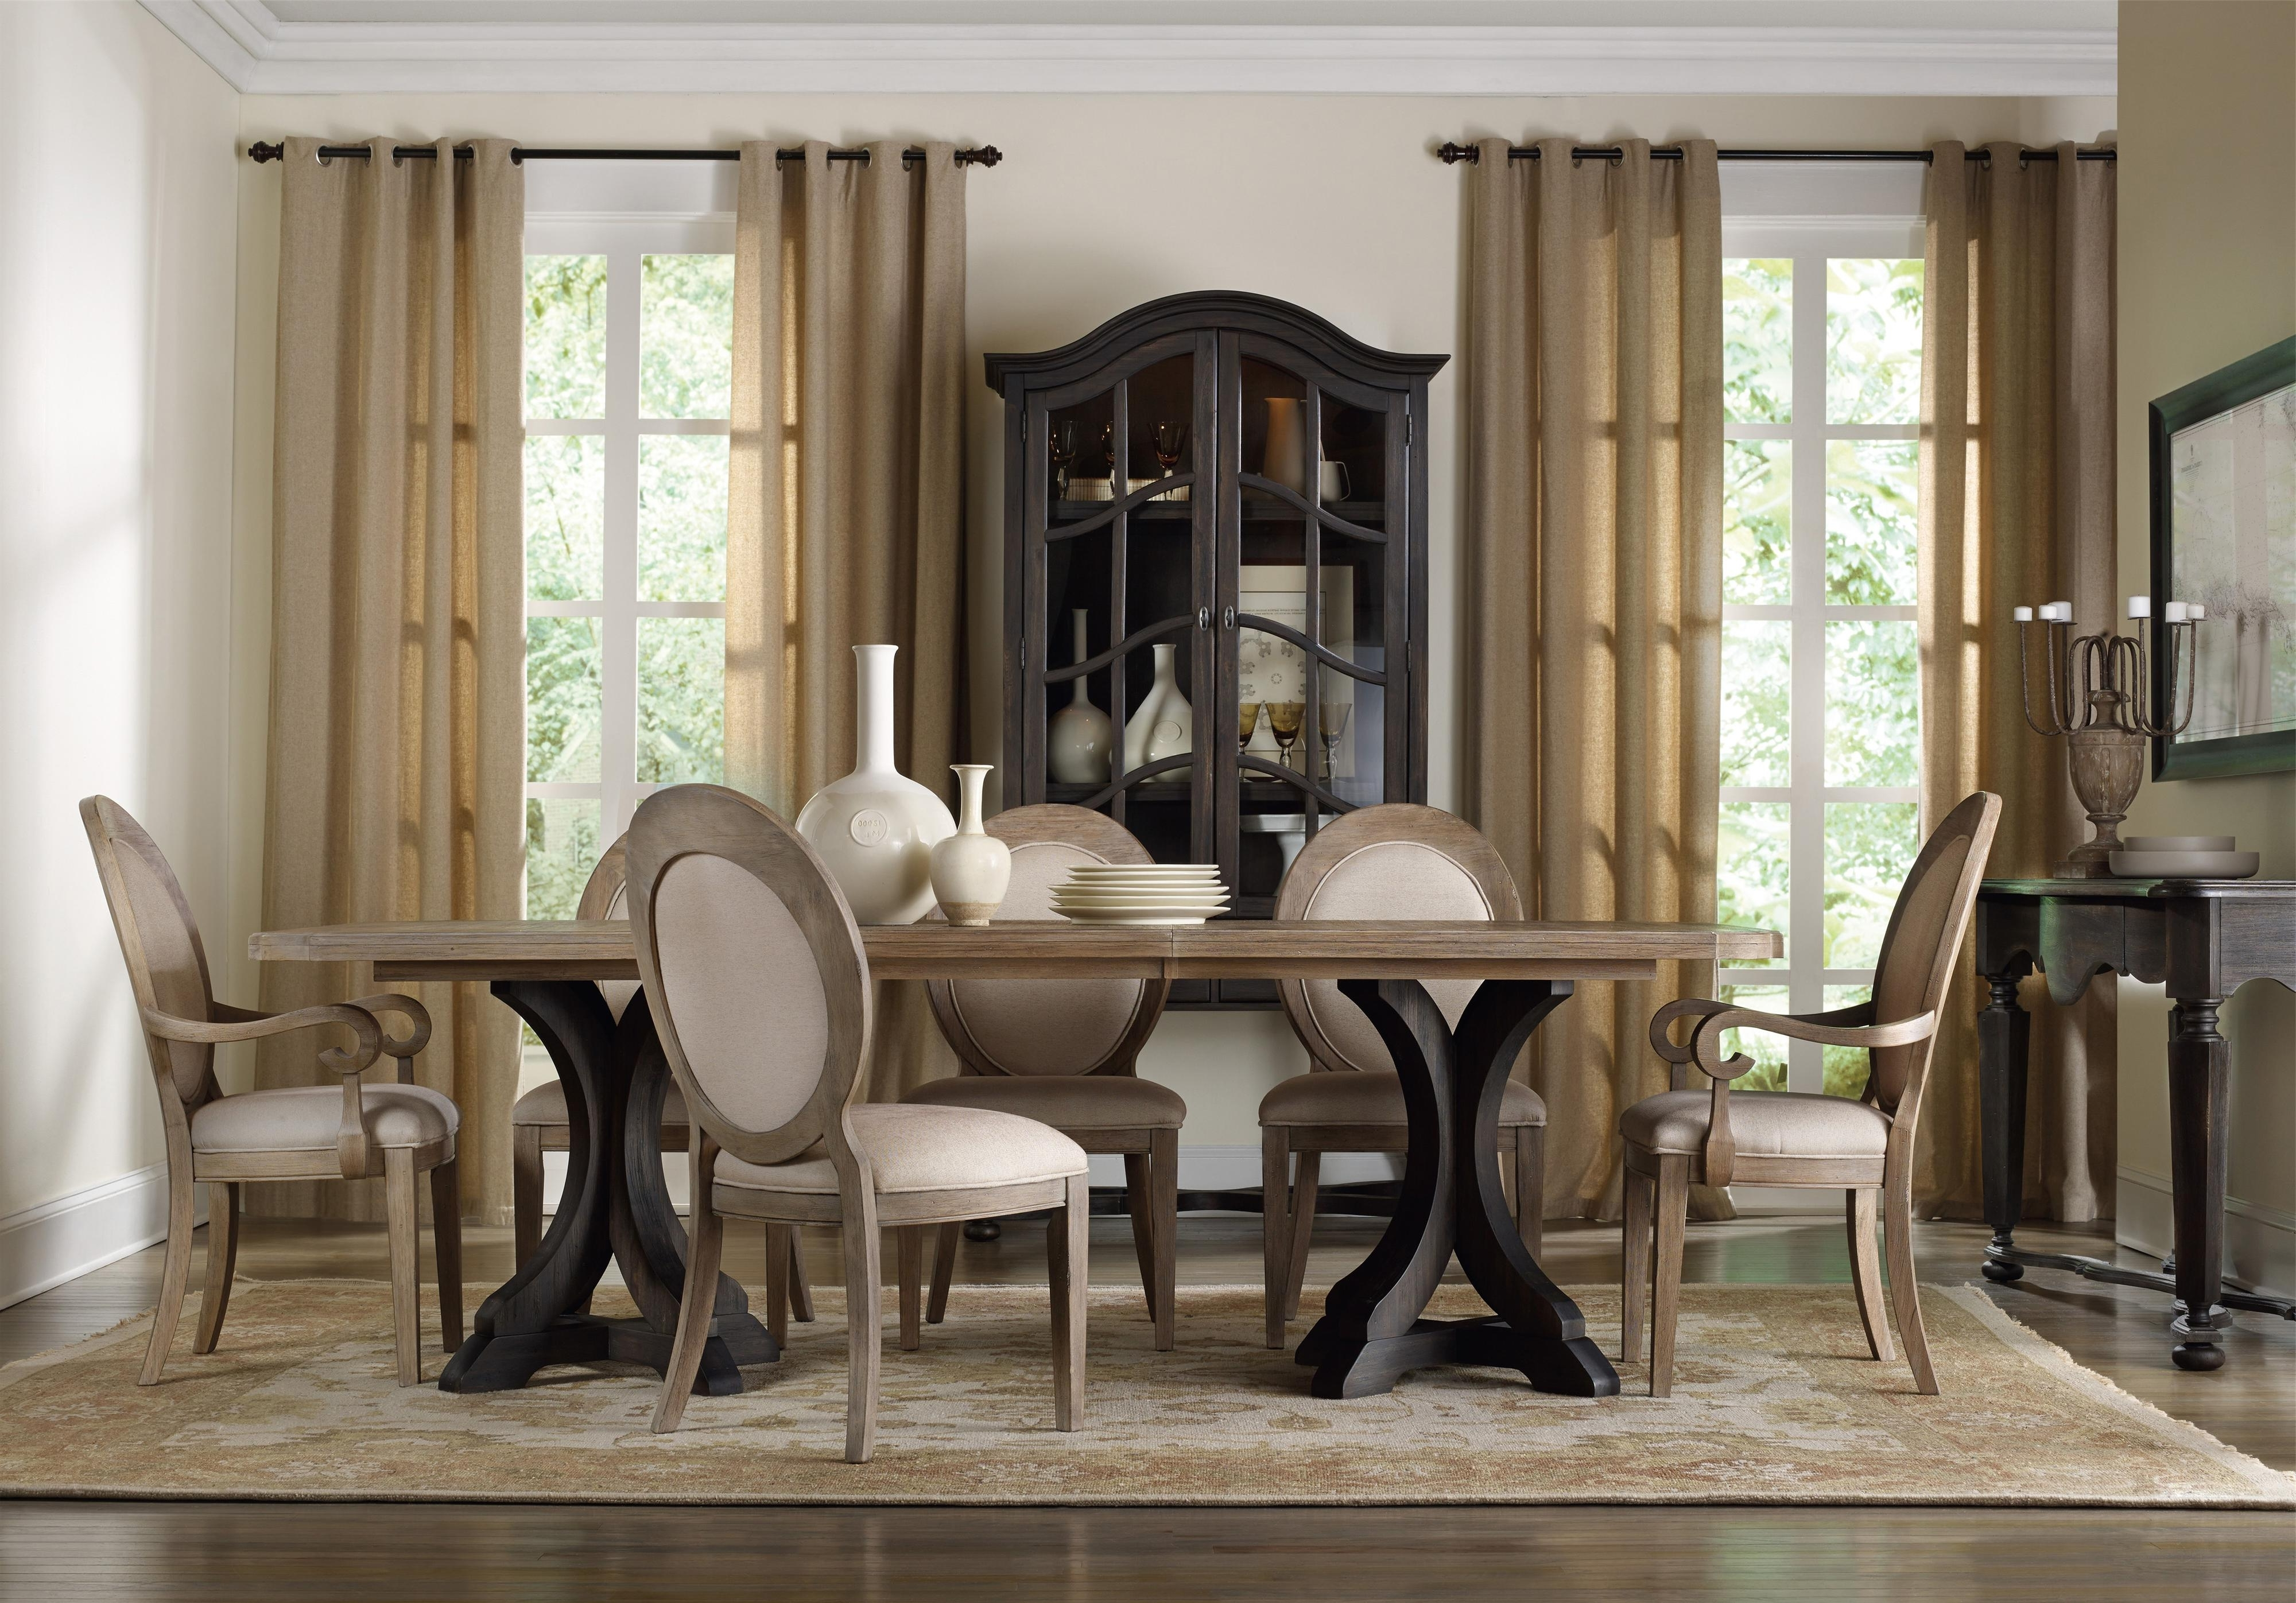 Preferred Hooker Furniture Corsica Rectangle Pedestal Dining Table Set With With Regard To Pedestal Dining Tables And Chairs (Gallery 9 of 25)